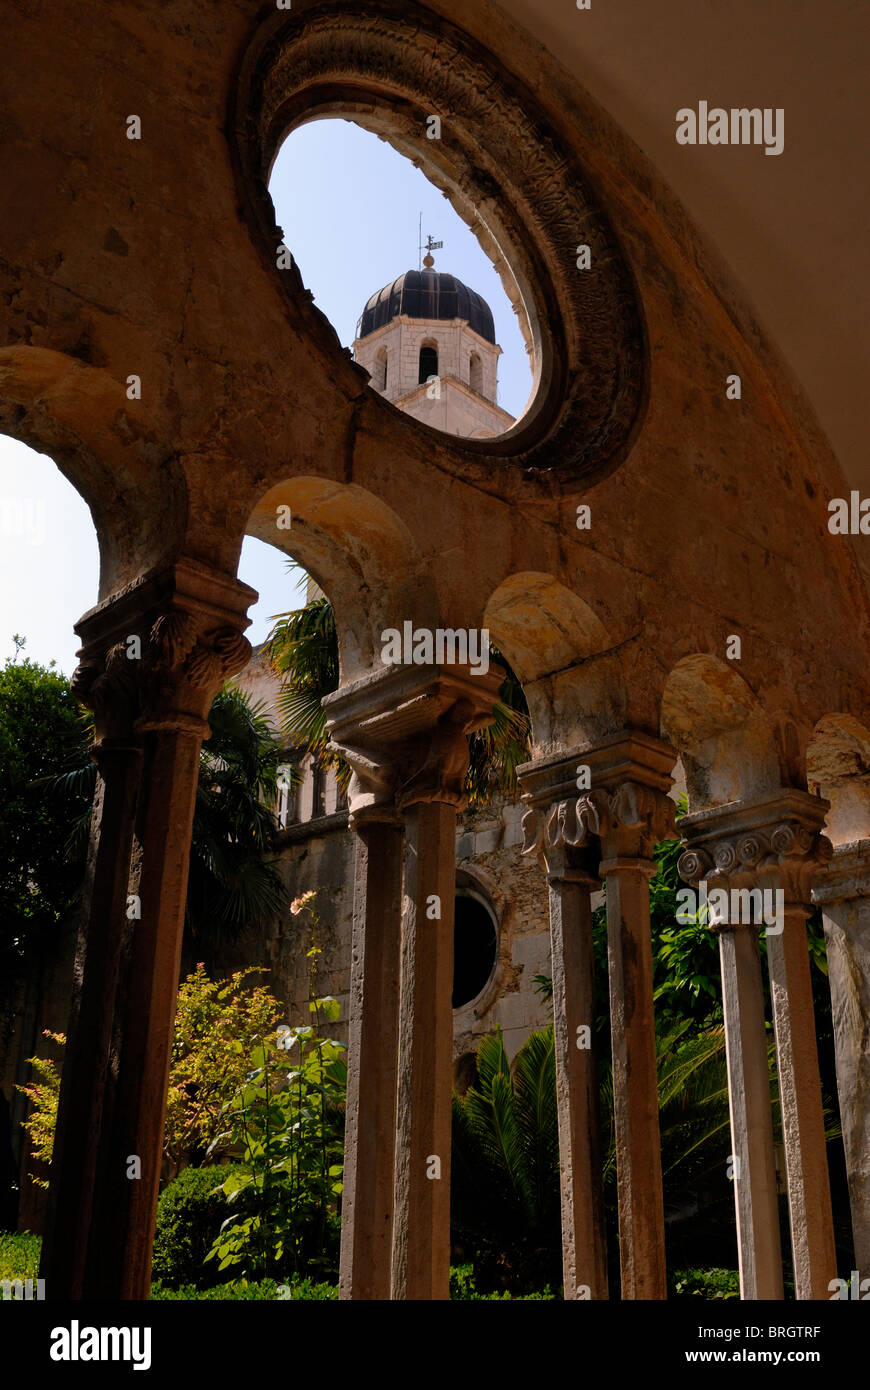 A fine view from Franciscan Cloister to the bell tower of the Franciscan Monastery. Construction of the Monastery Stock Photo